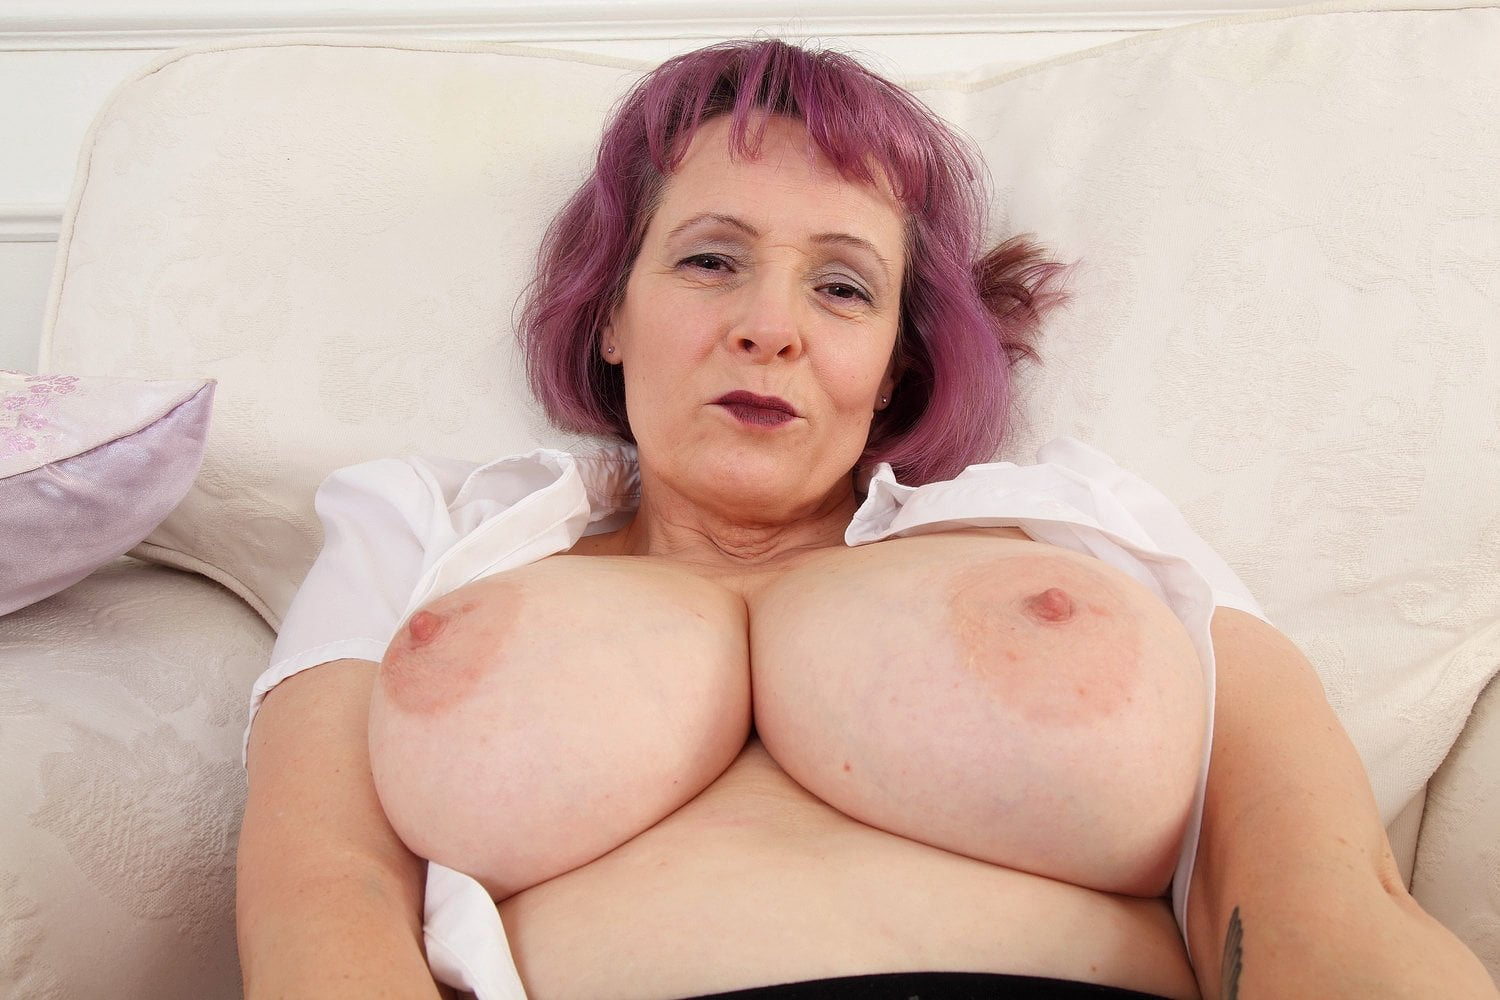 English Milf Tigger Plays With Her Big Tits And Pink Fanny -7364